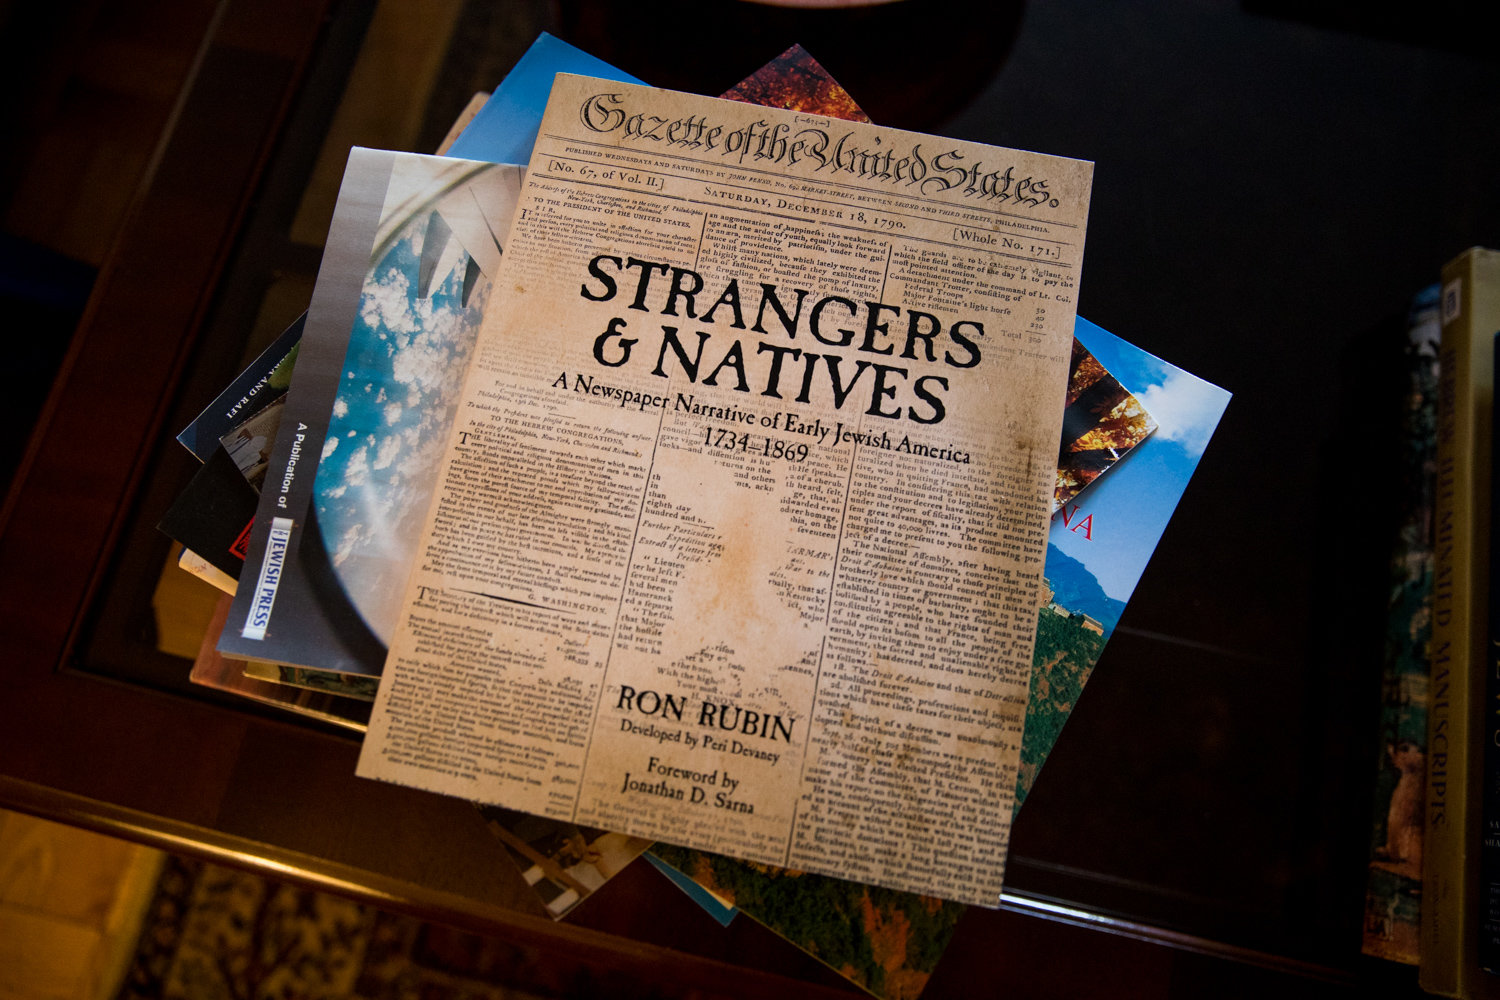 Ron Rubin's historical book 'Strangers & Natives' takes a look at early Jewish life in the United States based on reports from old newspapers.